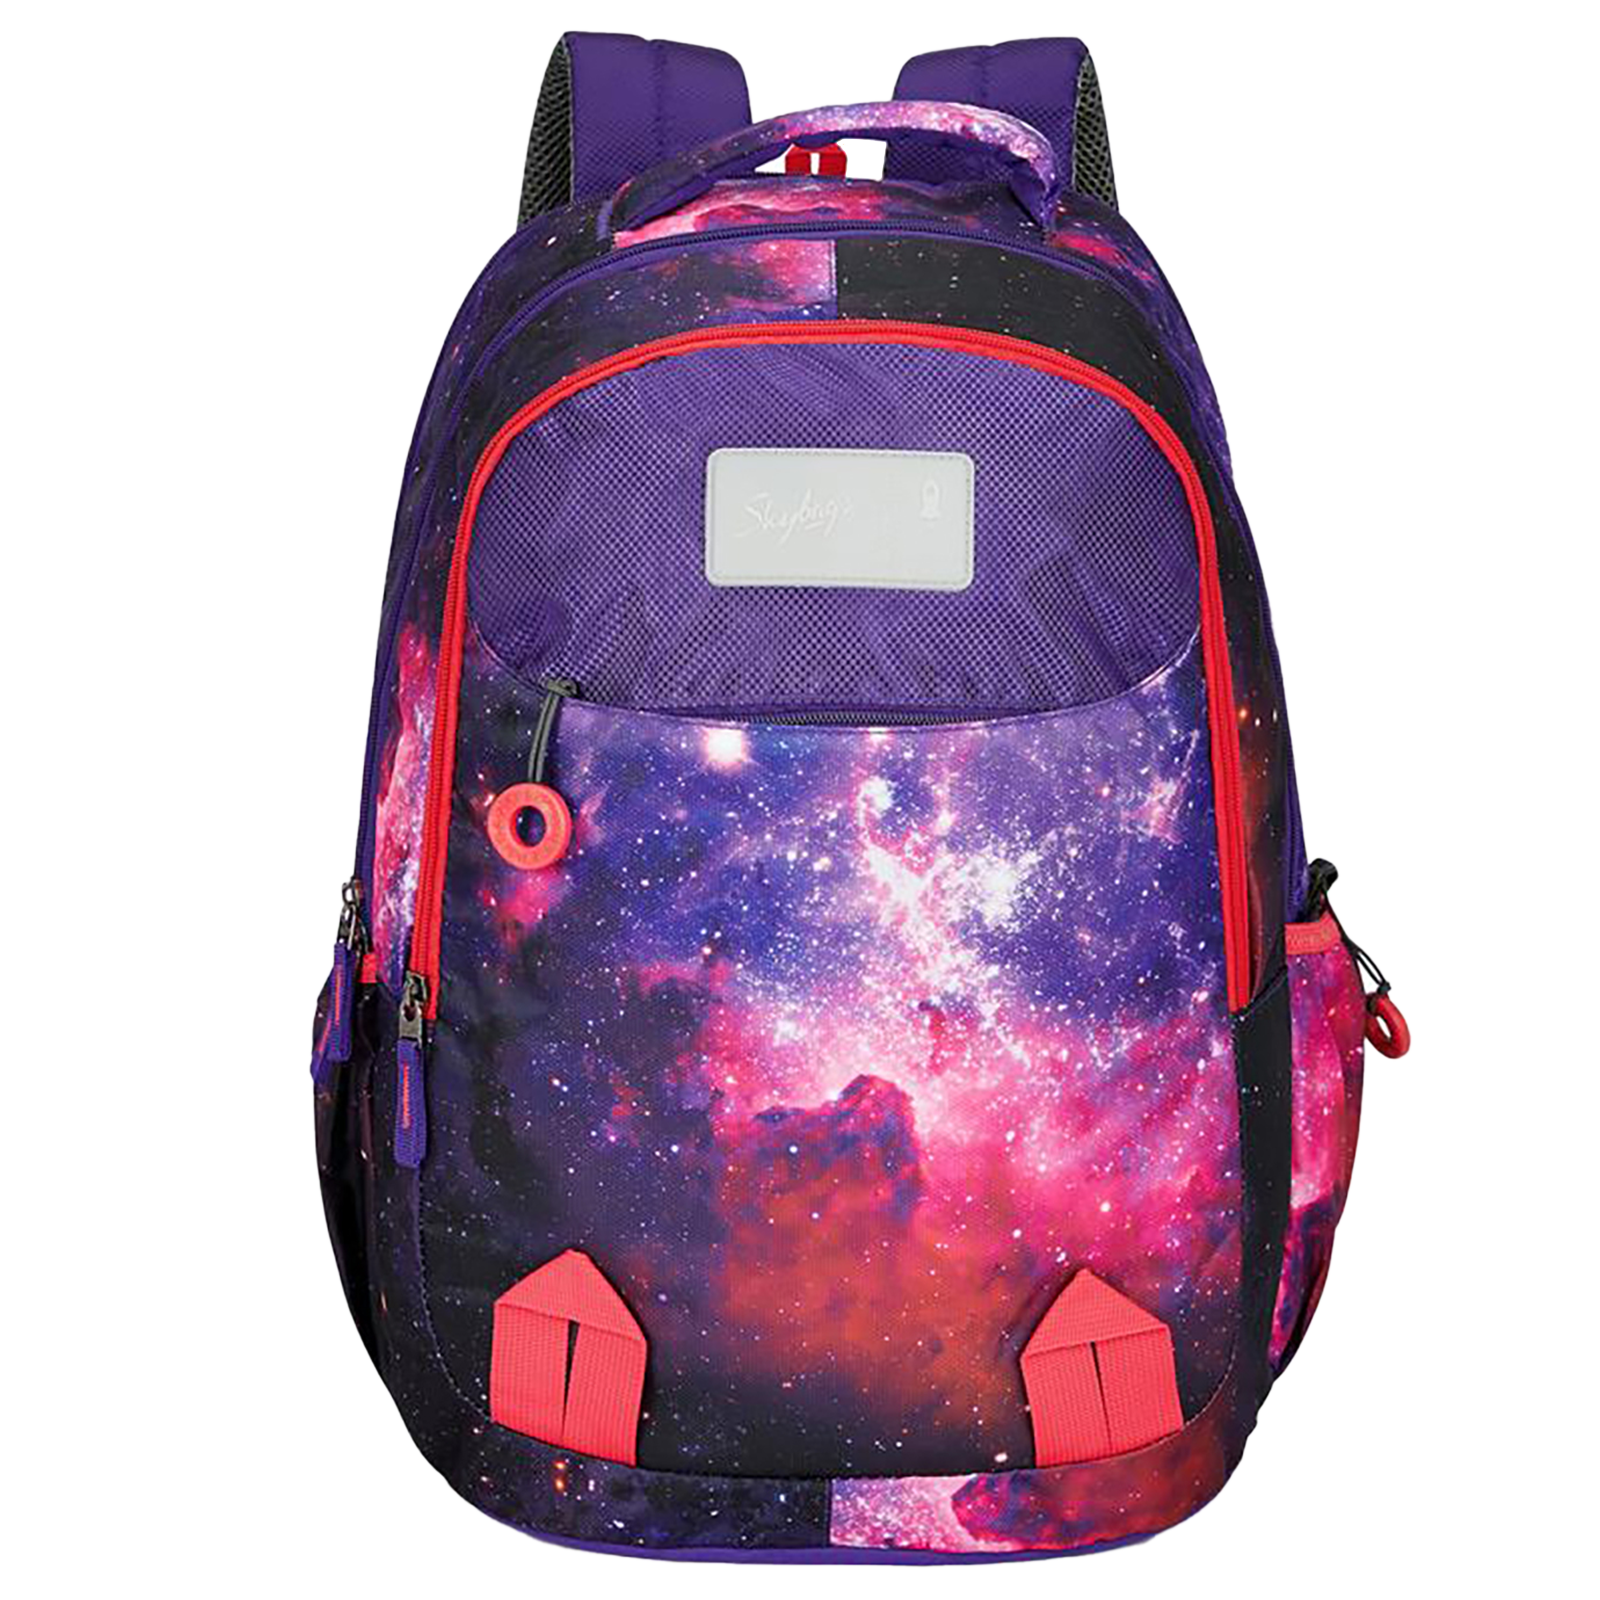 Sky Bags Astro 04 32 Litres Mini Gucci Backpack (Bottle Safety Lock, BPAST4PNK, Pink)_1